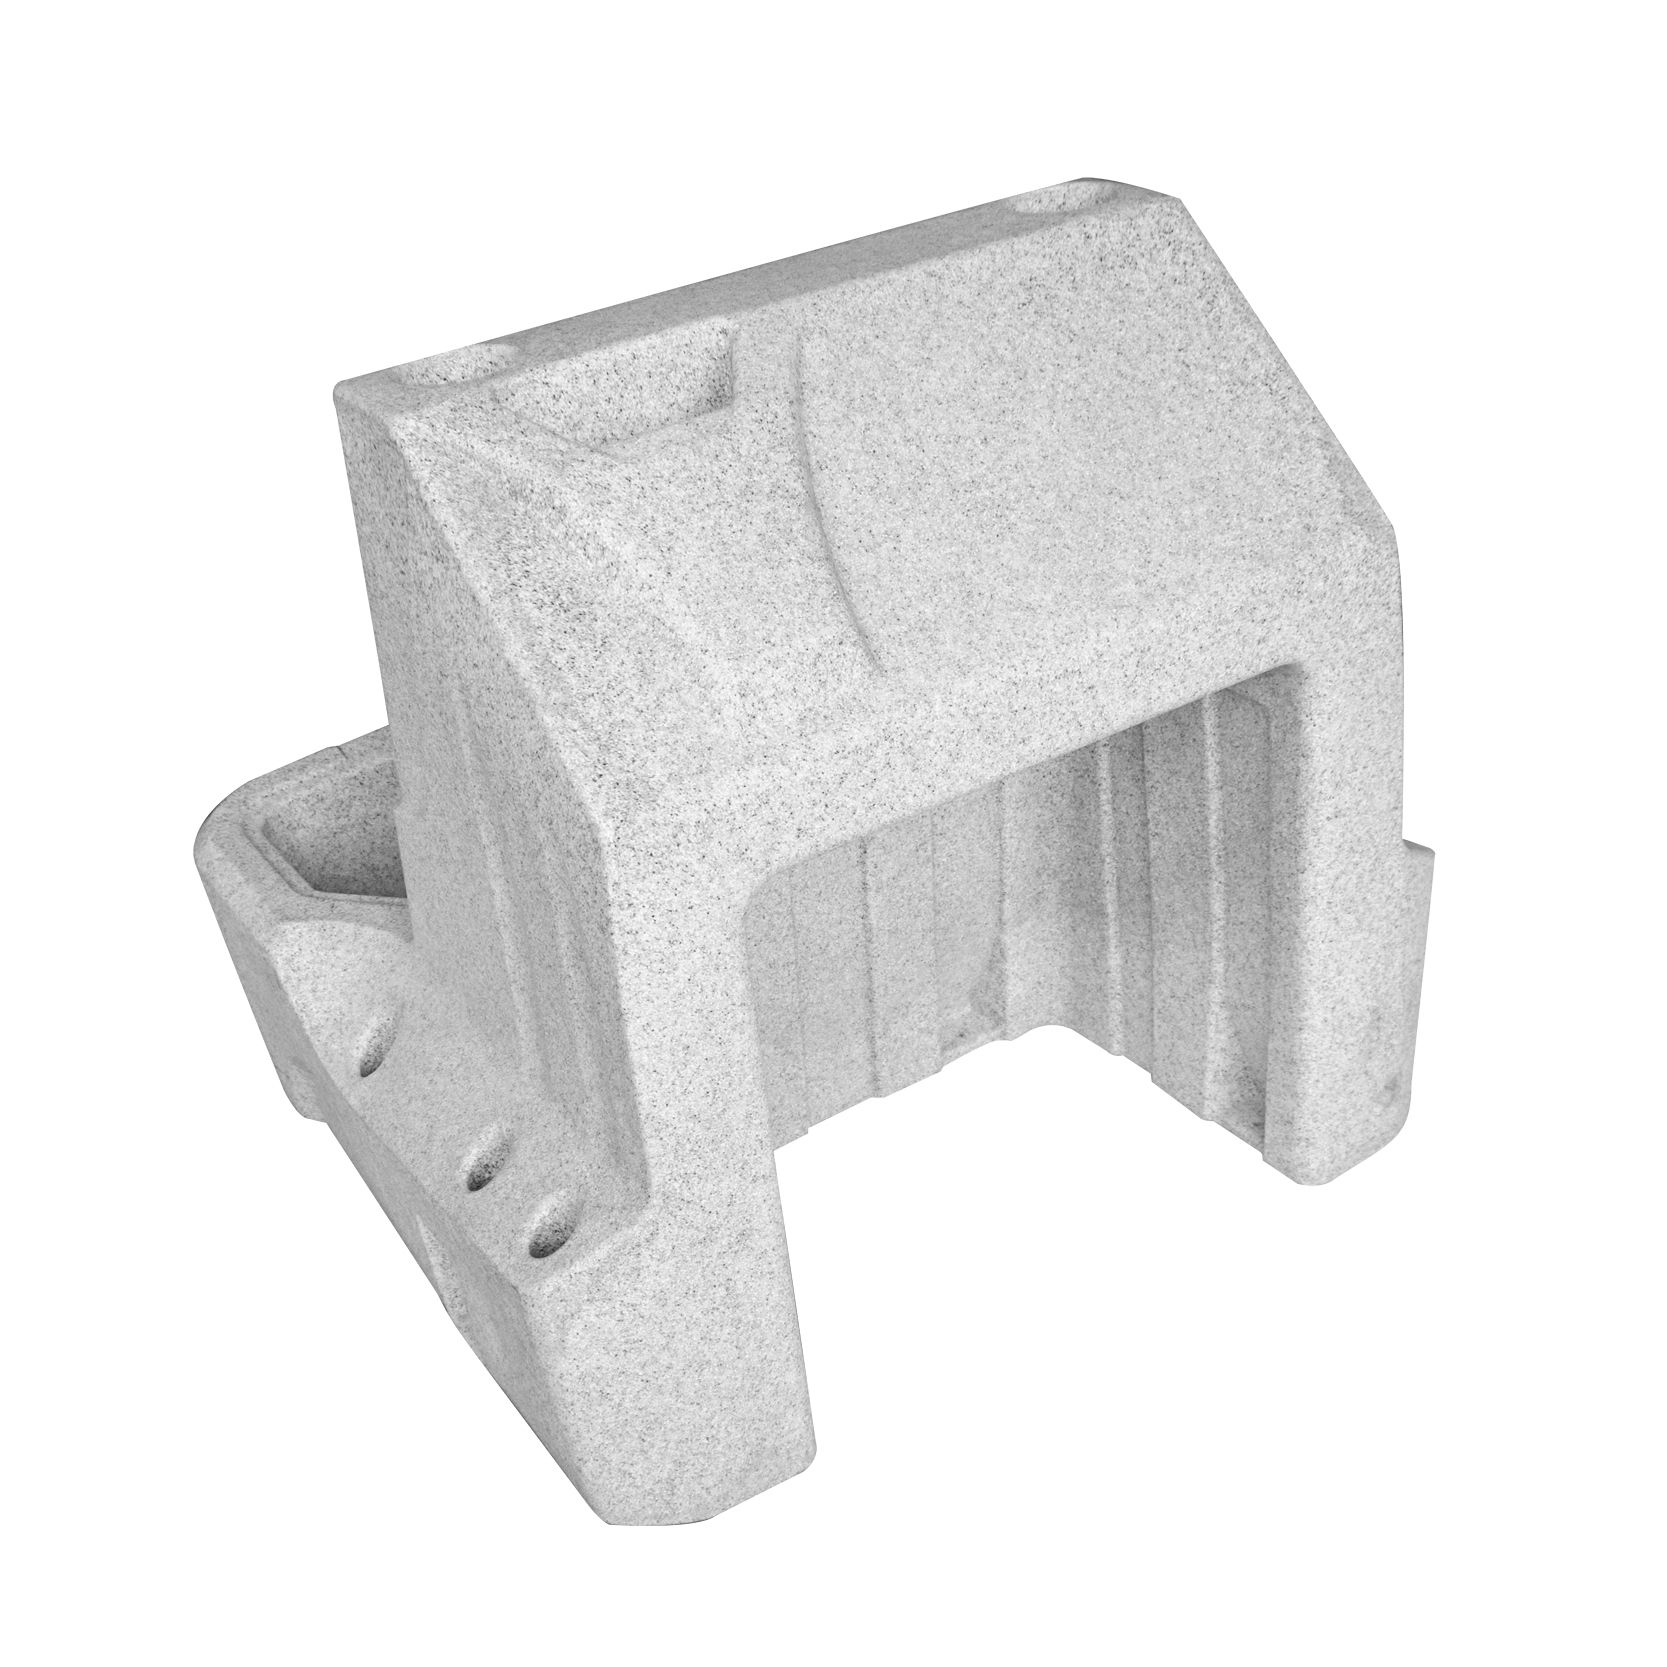 Rotational Molding Plastic Center Console For Pontoon Boat